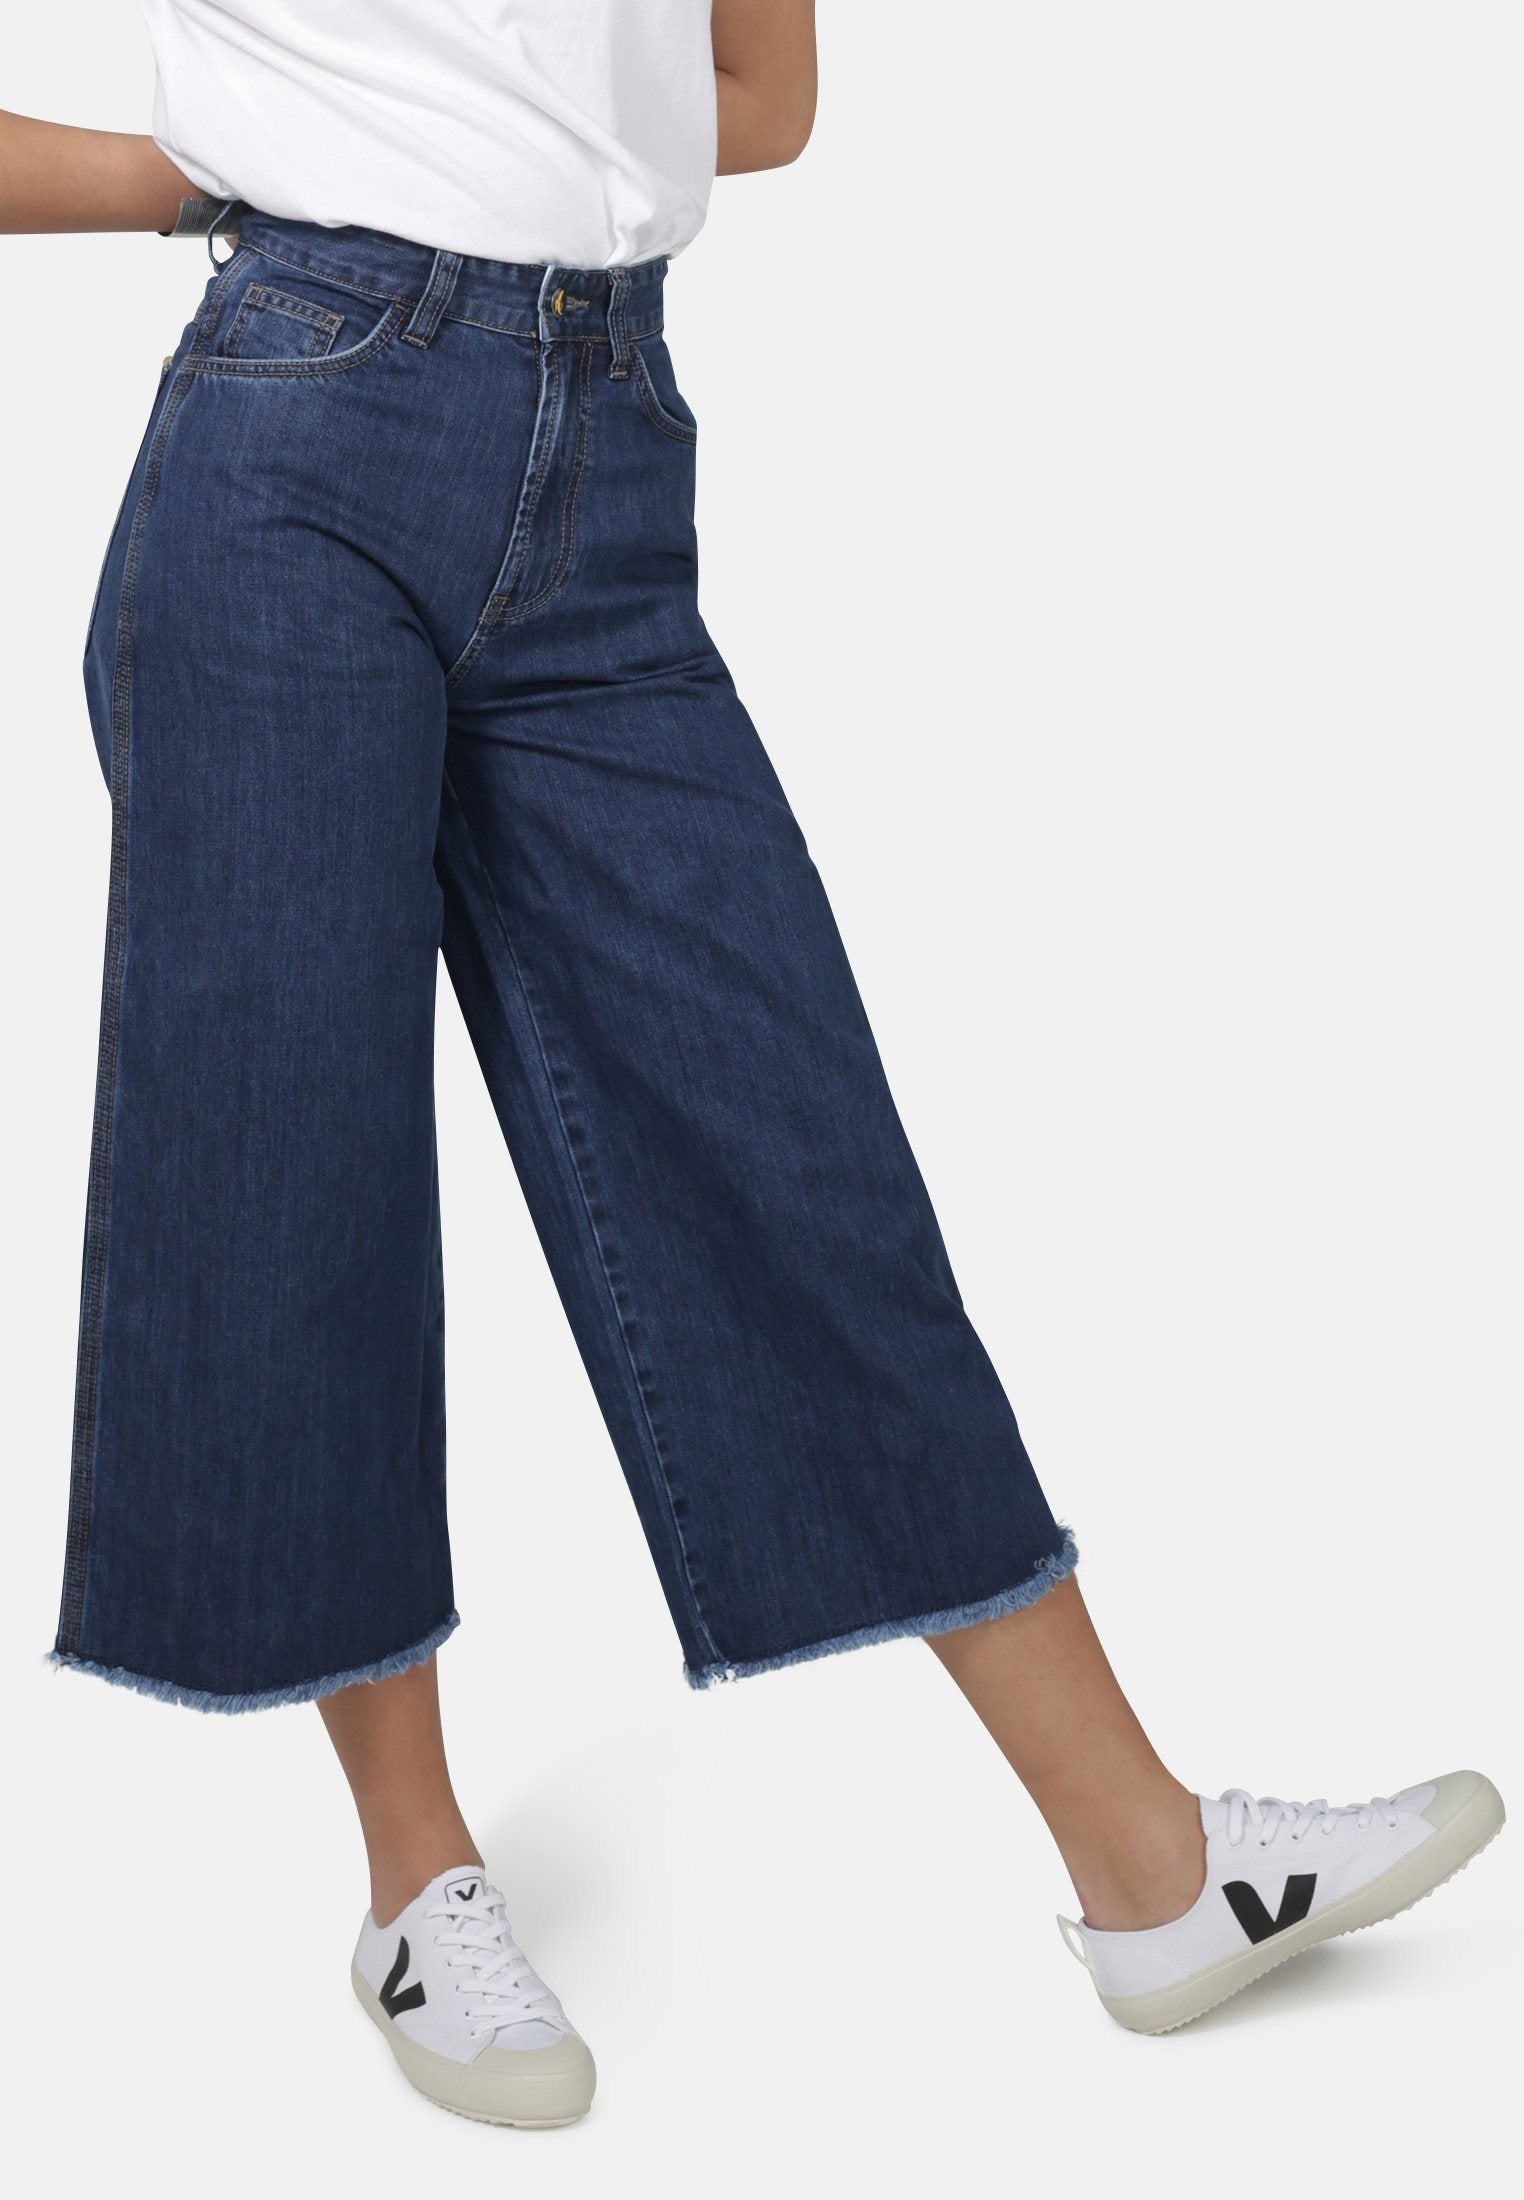 Dark Denim Crop Flare Jeans | 100% Organic Cotton | by MONKEE Genes